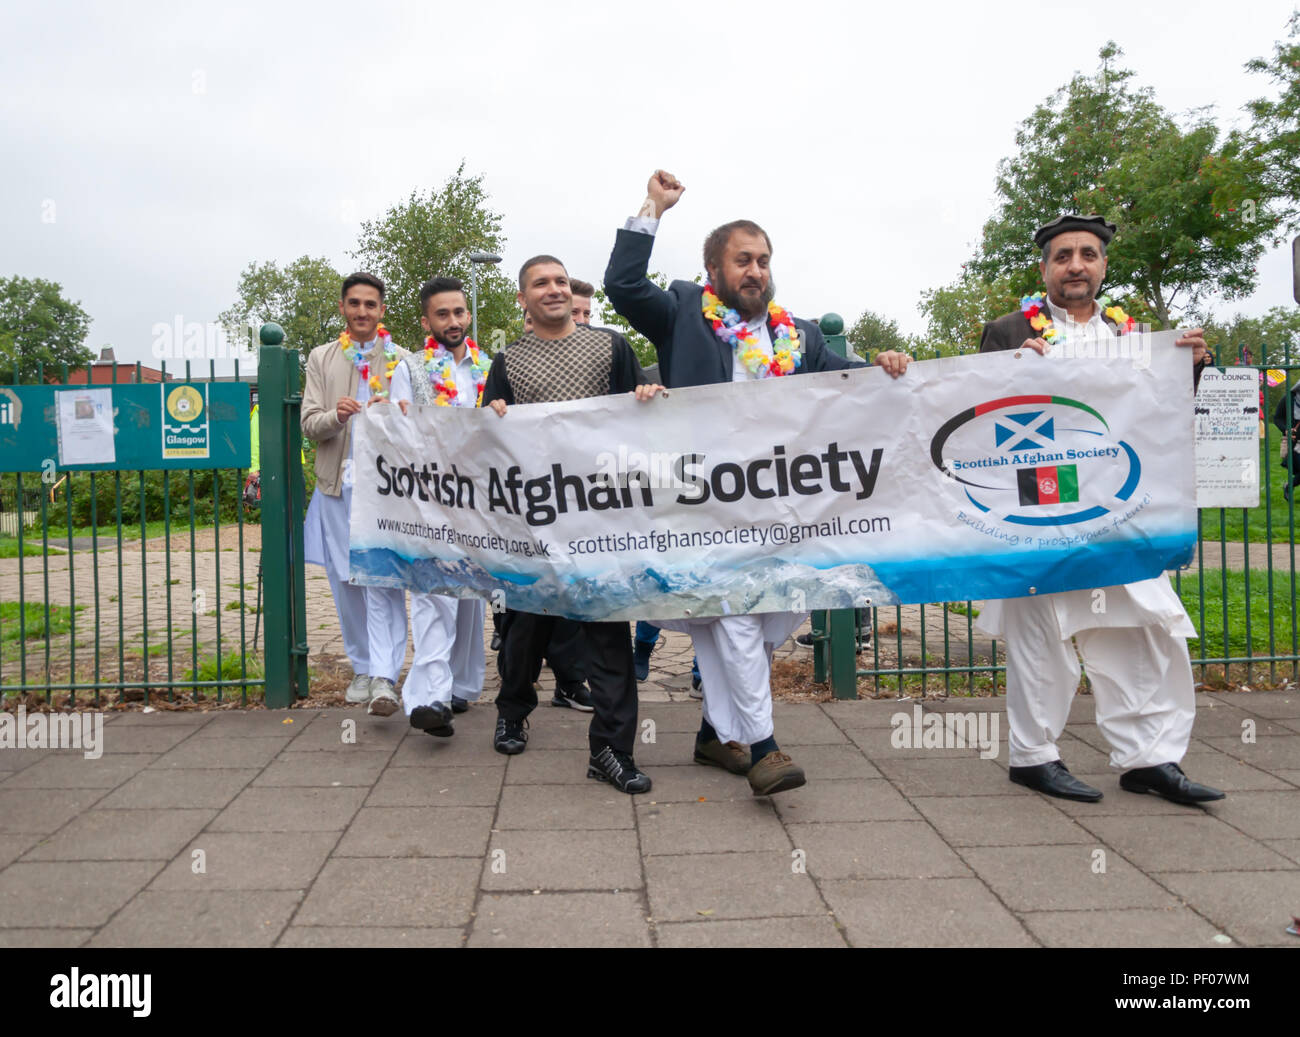 Glasgow, Scotland, UK. 18th August, 2018. A banner saying Scottish Afghan Society is carried at the start of the parade of the Govanhill International Festival & Carnival. This year's parade includes community groups, a pipe band, drummers, dancers, jugglers, roller skaters and a brass band all starting at Govanhill Park and travelling through the streets of Govanhill finishing at the Queen's Park Arena. Credit: Skully/Alamy Live News Stock Photo